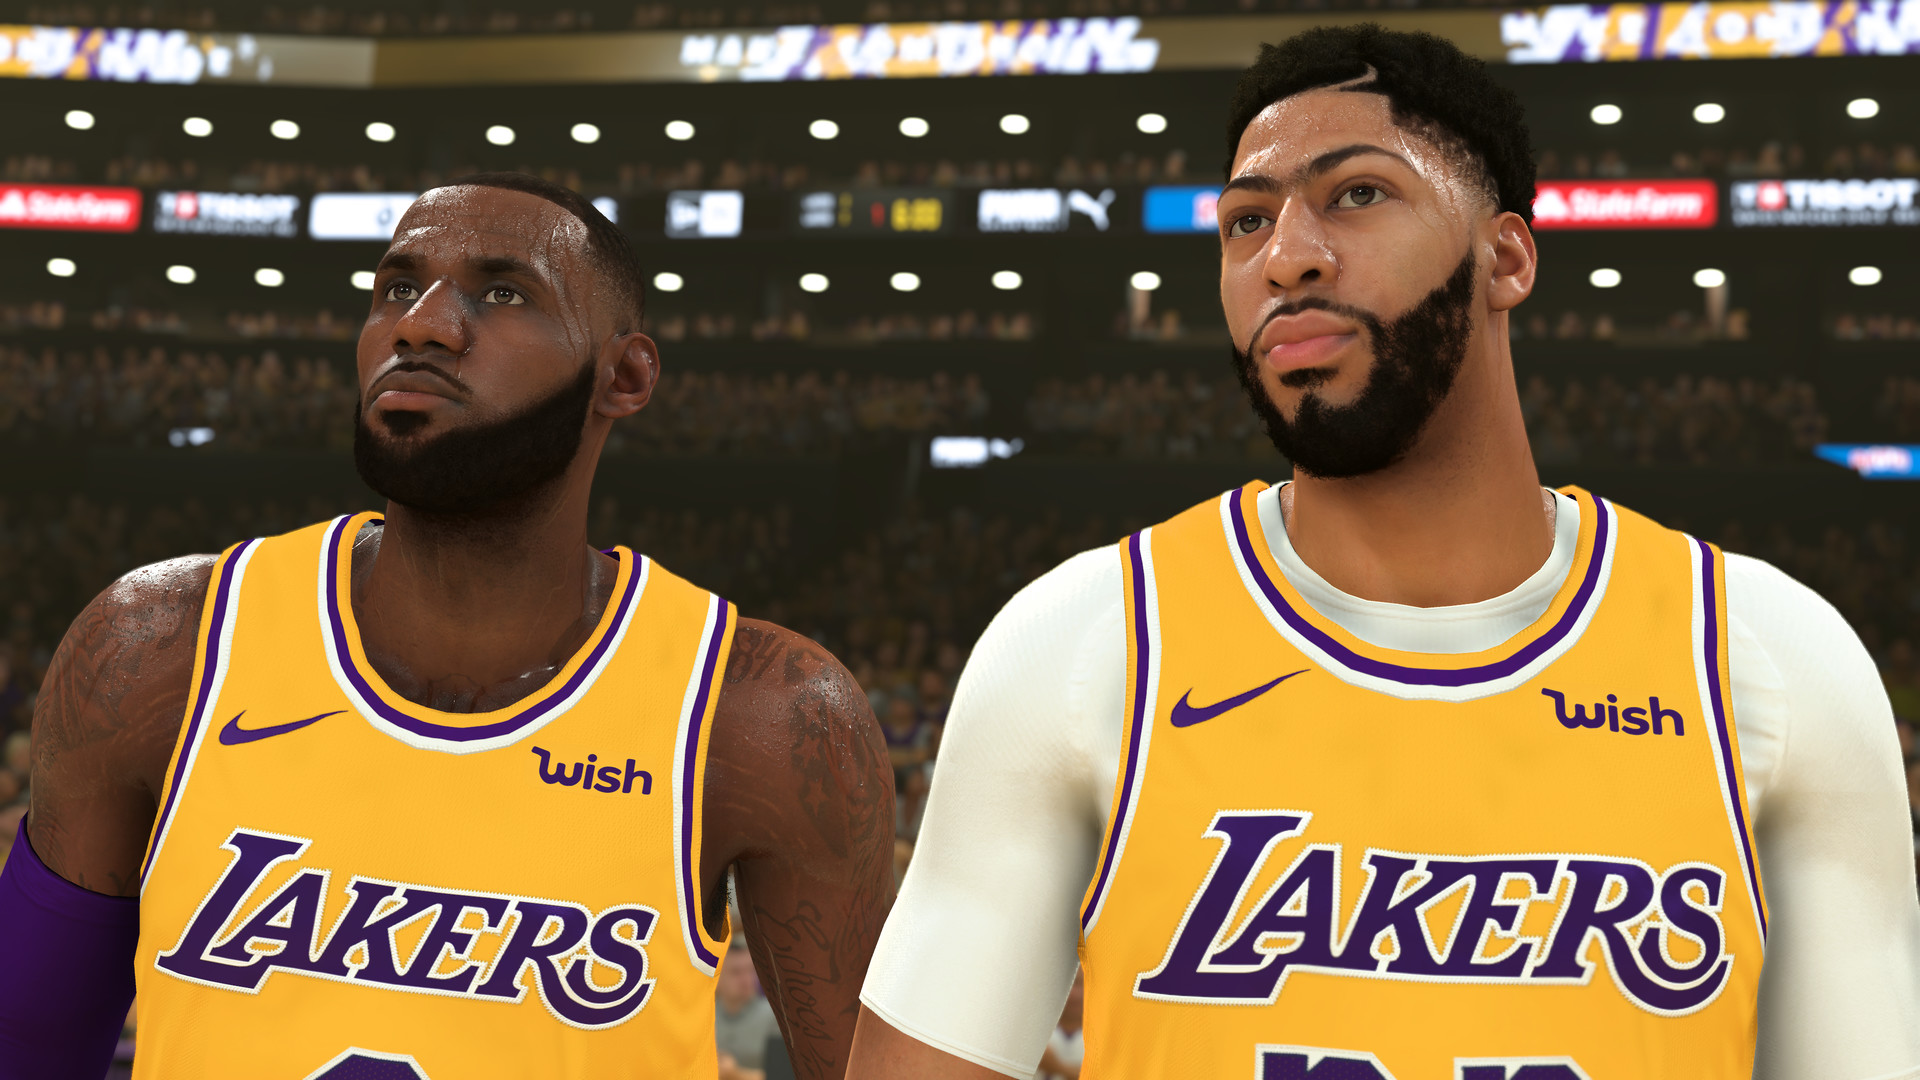 NBA 2K21 Release Date, Features Basketball Game to Launch with Xbox Series X Console